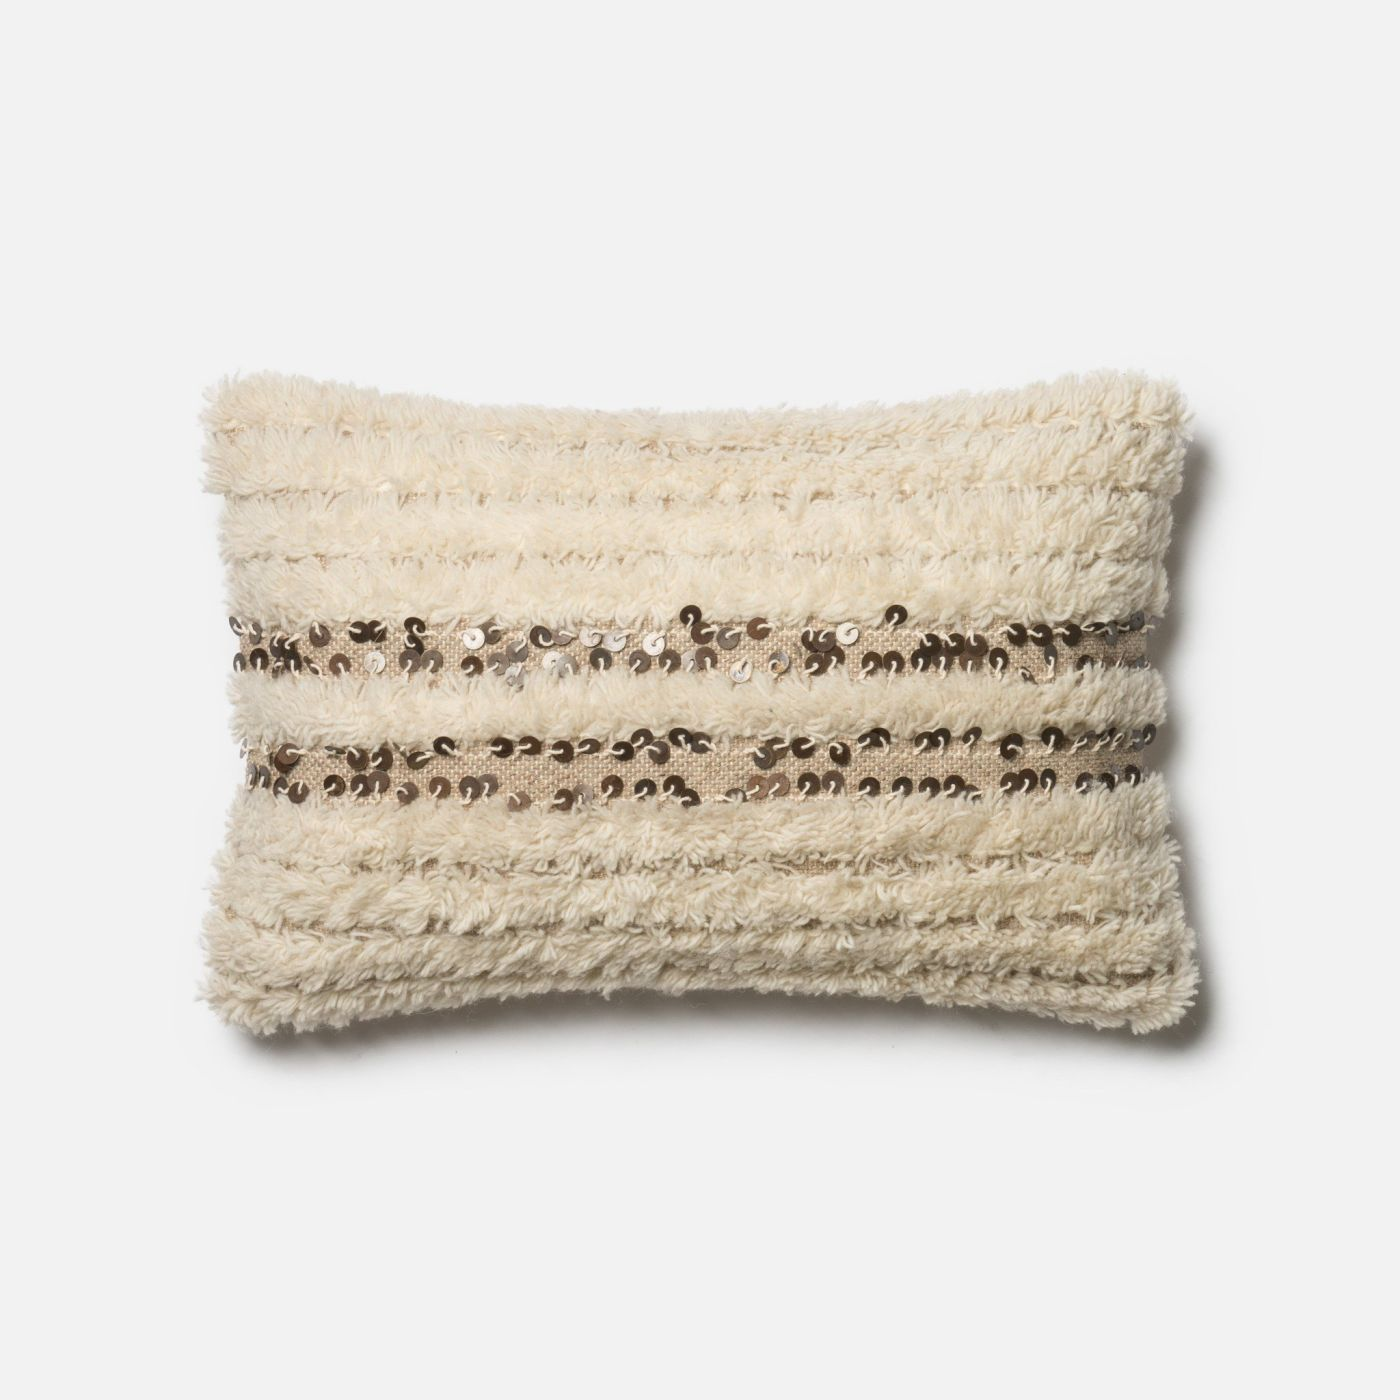 Ivory Decorative Throw Pillows : Loloi Rugs Loloi Ivory Decorative Throw Pillow (P0423) DSETP0423IV00PIL5. Only $119.00 at ...